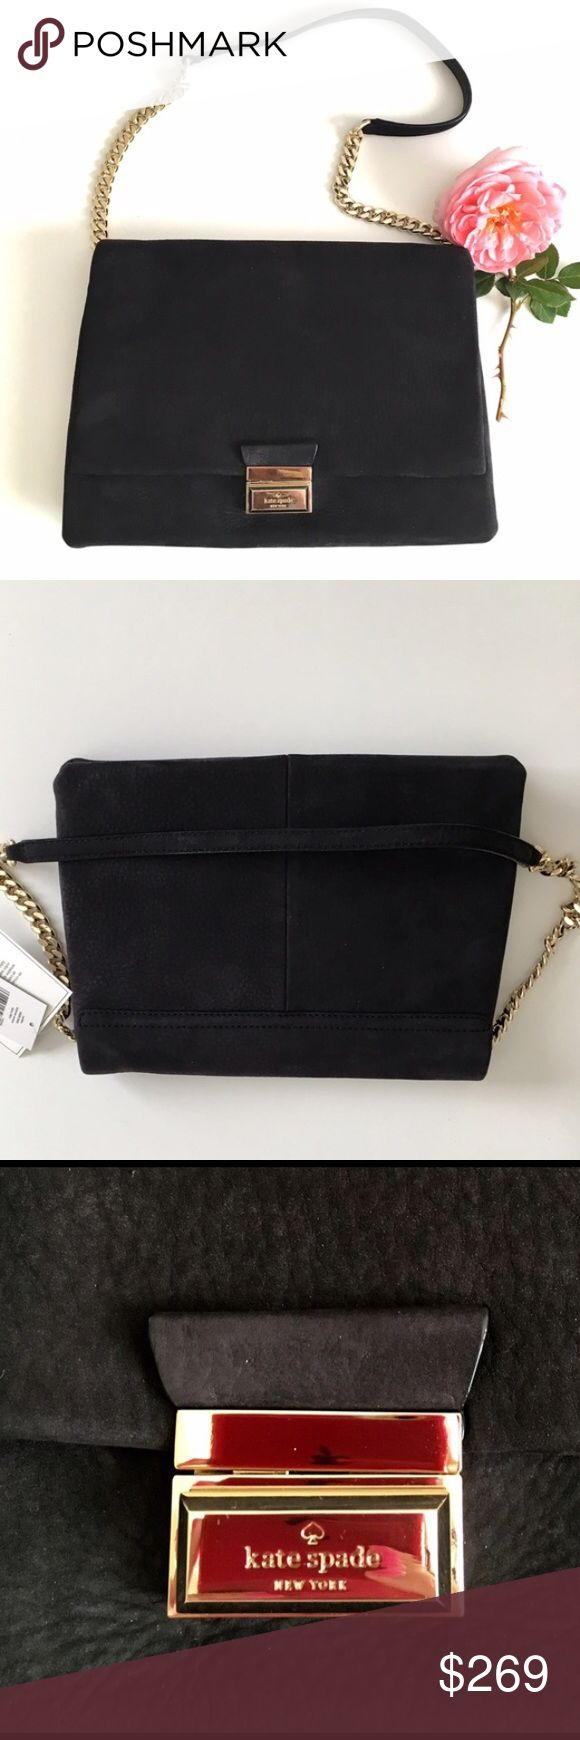 "Kate Spade • Carilee Lafayette Ave • Black Suede Gorgeous, soft suede in a classic, understated style.   •14k gold plated chain and hardware, including nameplate on pushlock closure.  •Two separate inner pockets, one inner zip pocket.  •14"" shoulder drop •Approx meas 7.5 h x 11 w x 3.5 d  ❤️Offers welcome kate spade Bags Shoulder Bags"